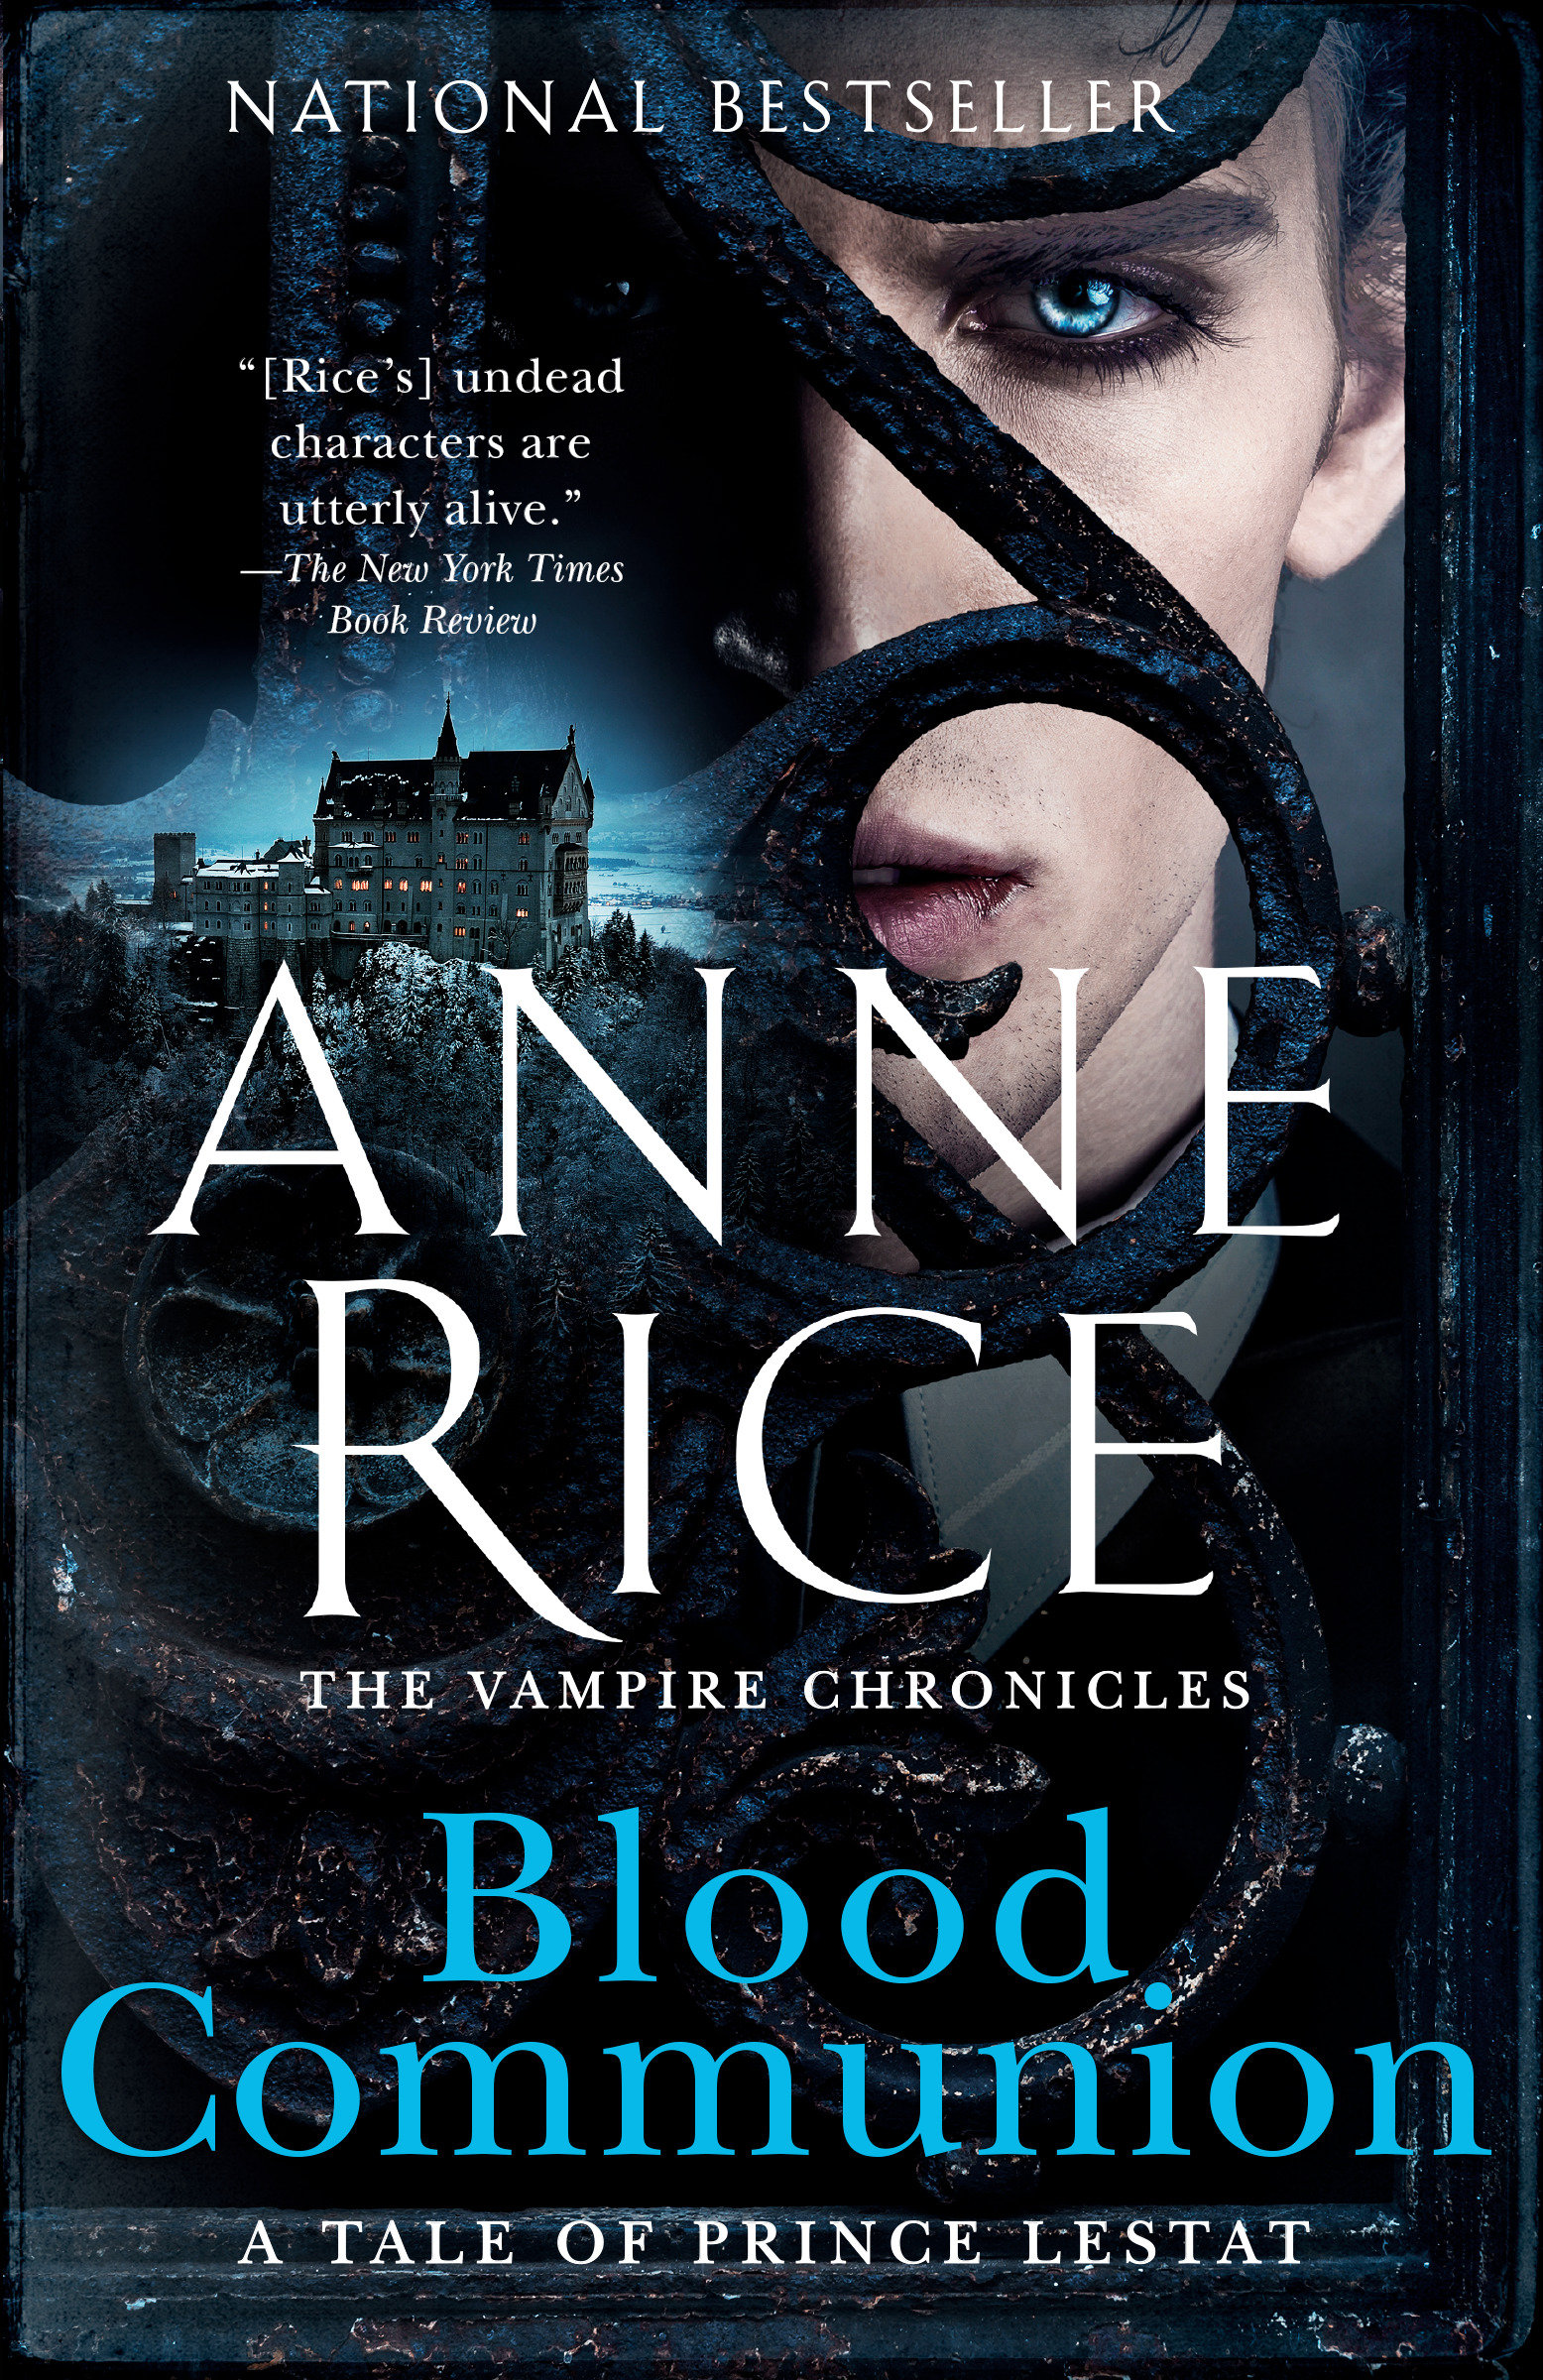 Blood communion : a tale of Prince Lestat